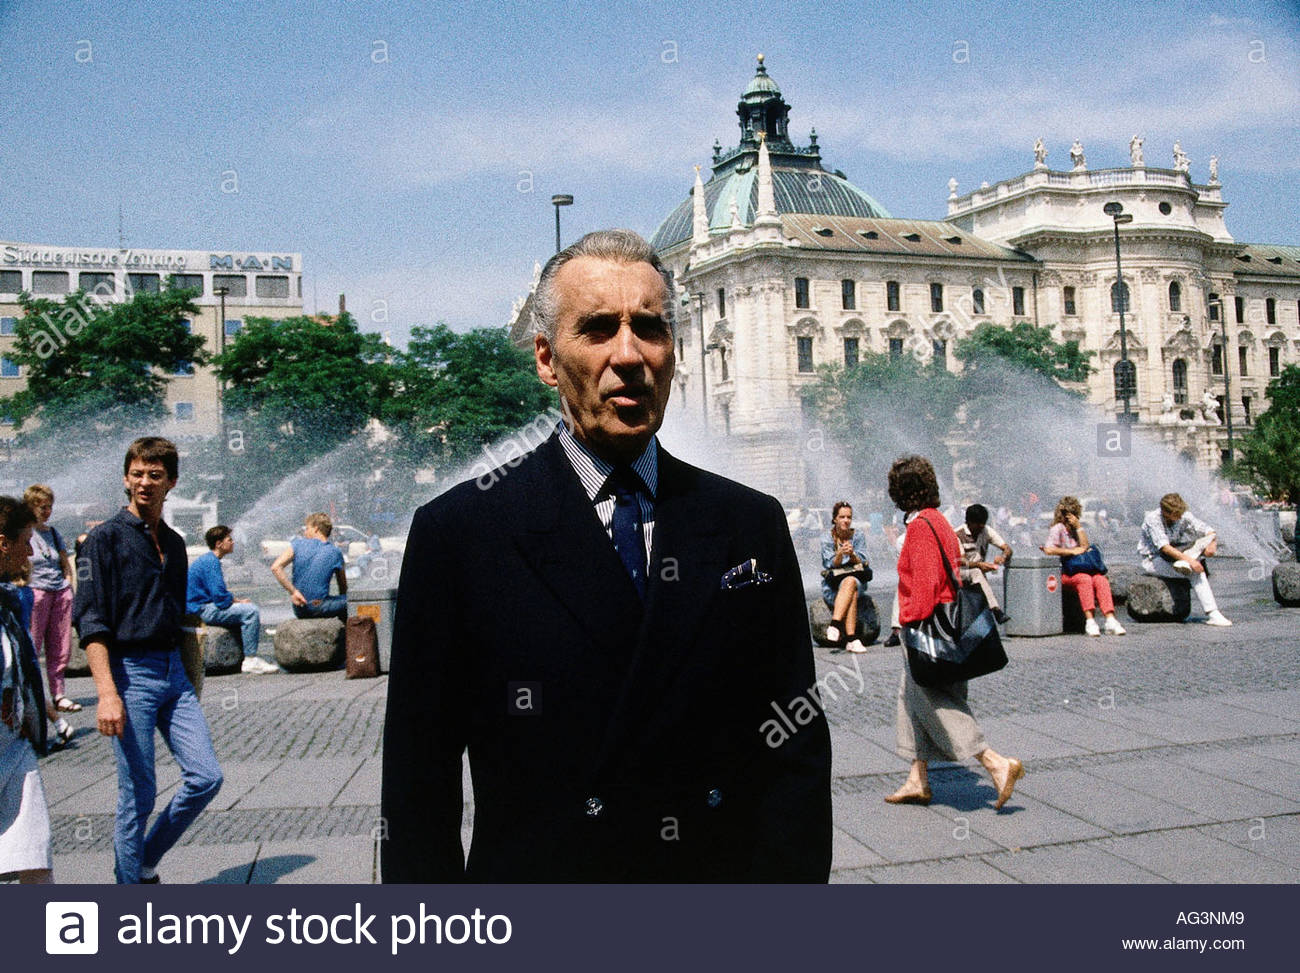 Lee, Christopher, * 27.5.1922, British actor, half length, Munich, July 1987, Additional-Rights-Clearance-Info-Not-Available - Stock Image